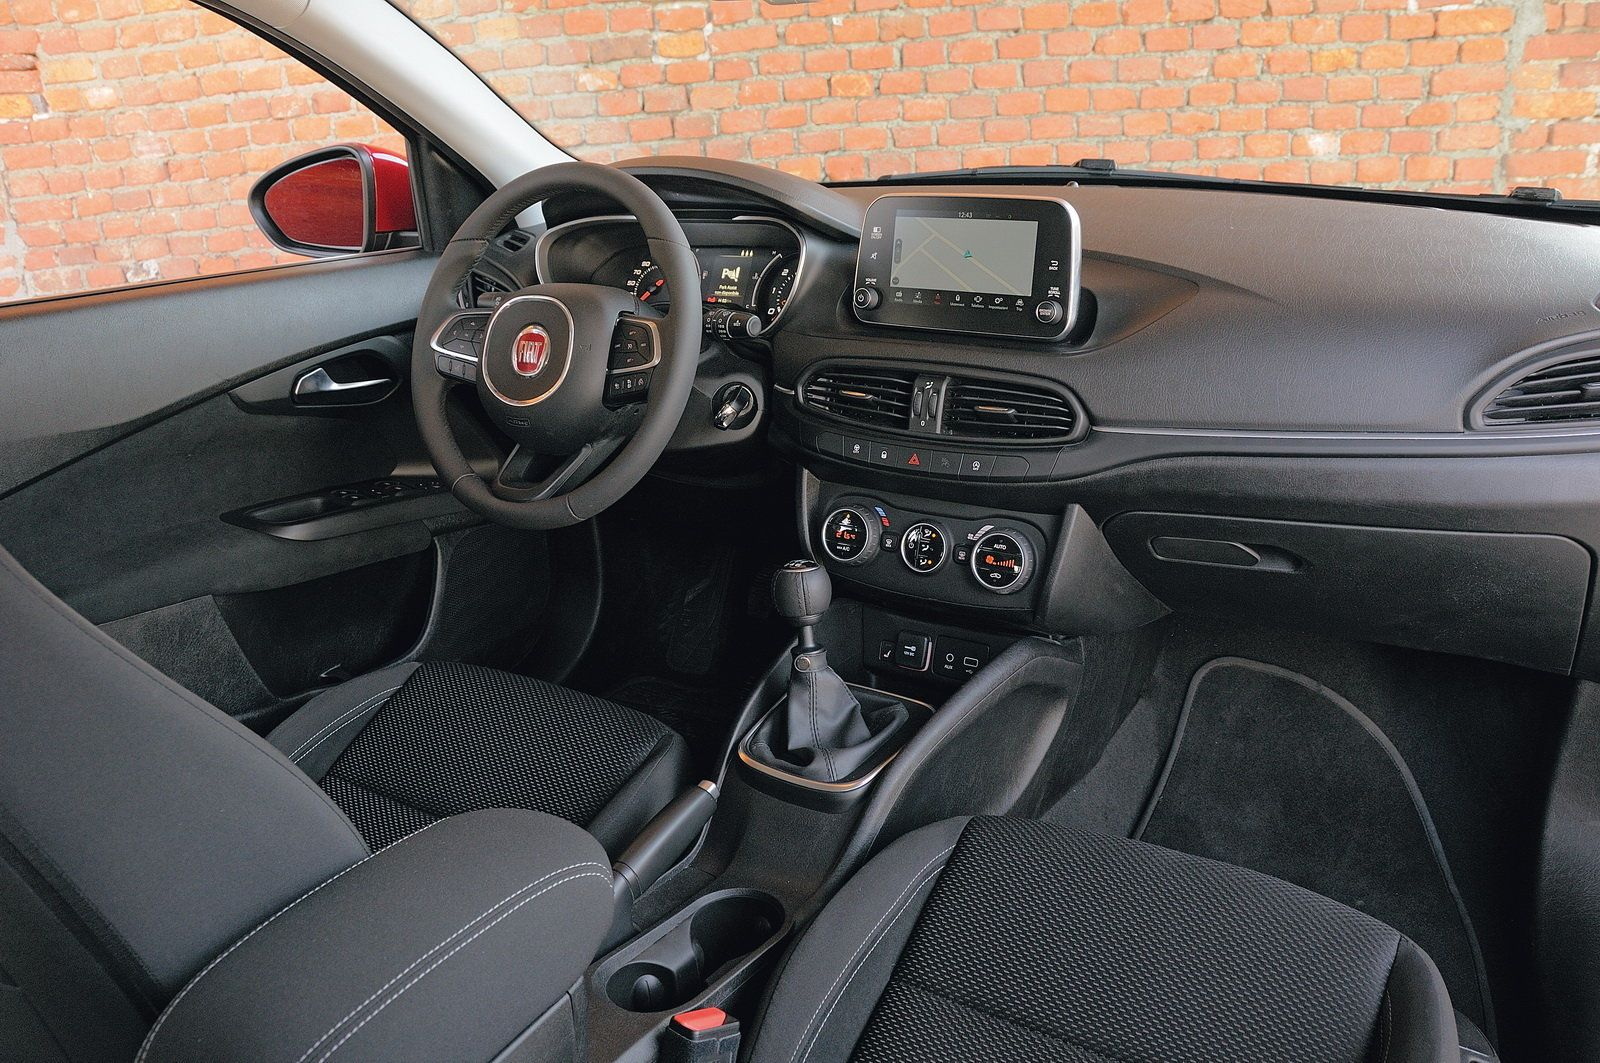 2016 fiat tipo 5 door interior fiat tempra tipo pinterest fiat and cars - Fiat tipo interior ...